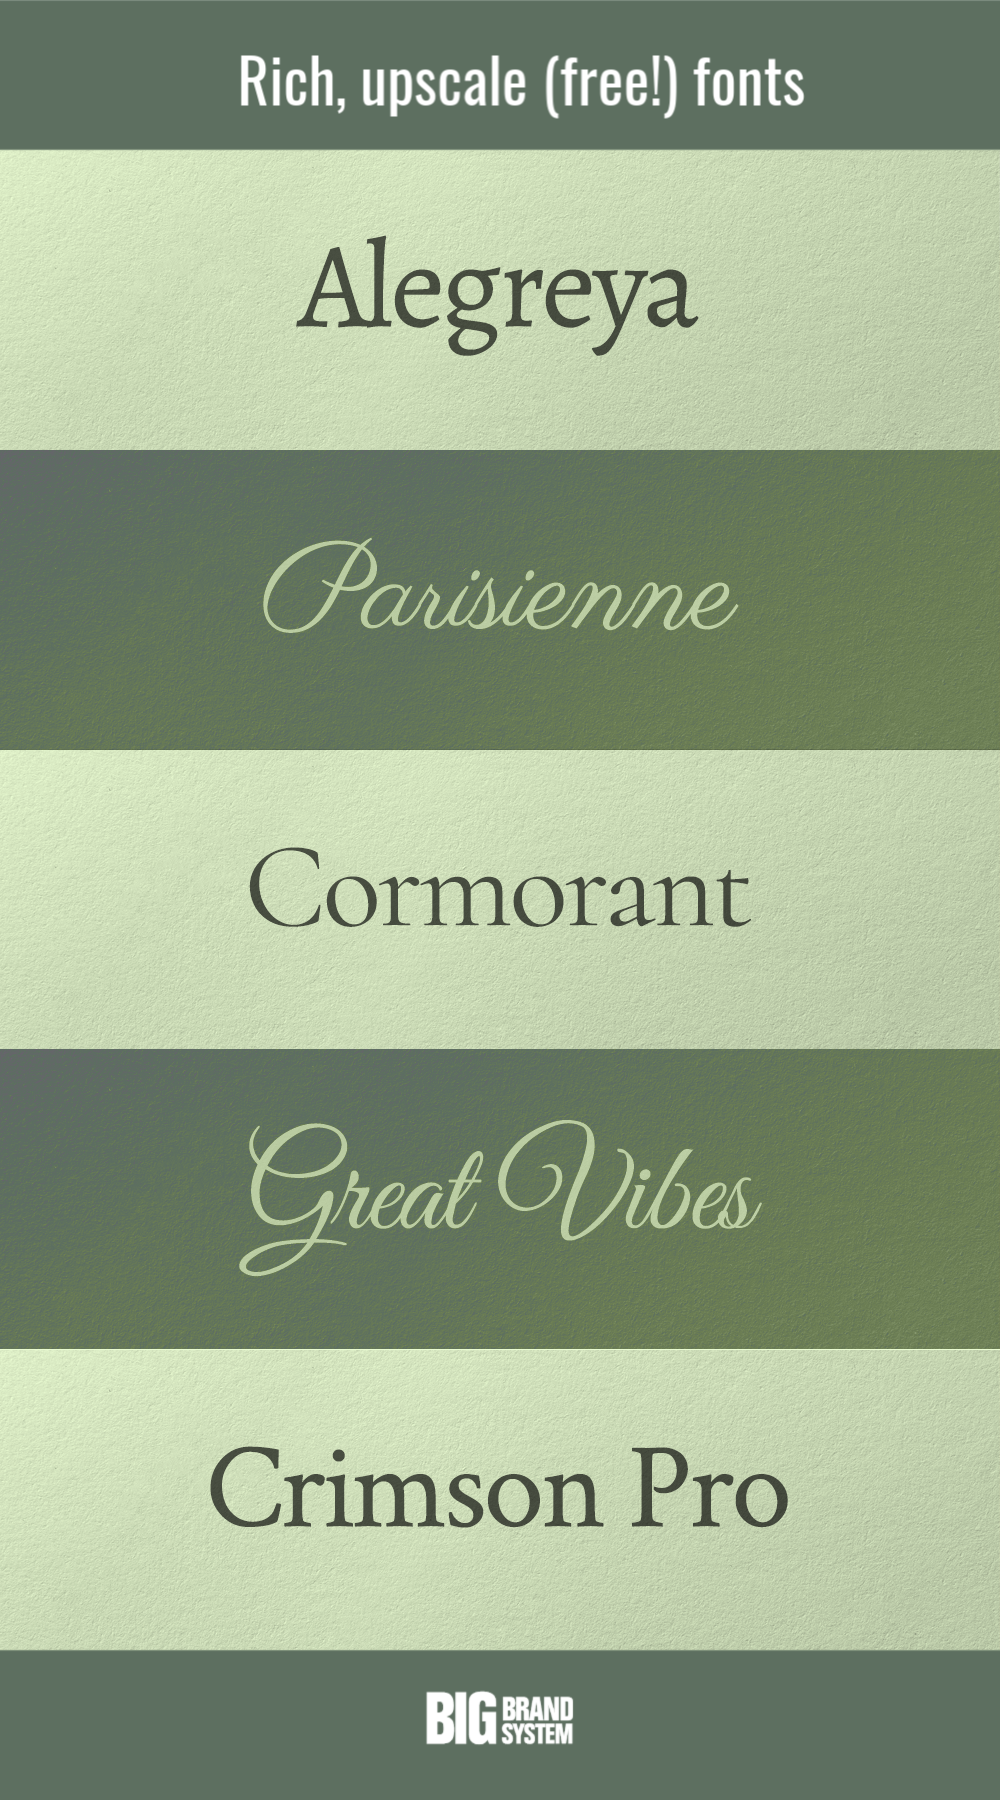 Type Styles of the Rich and Famous Word mark logo